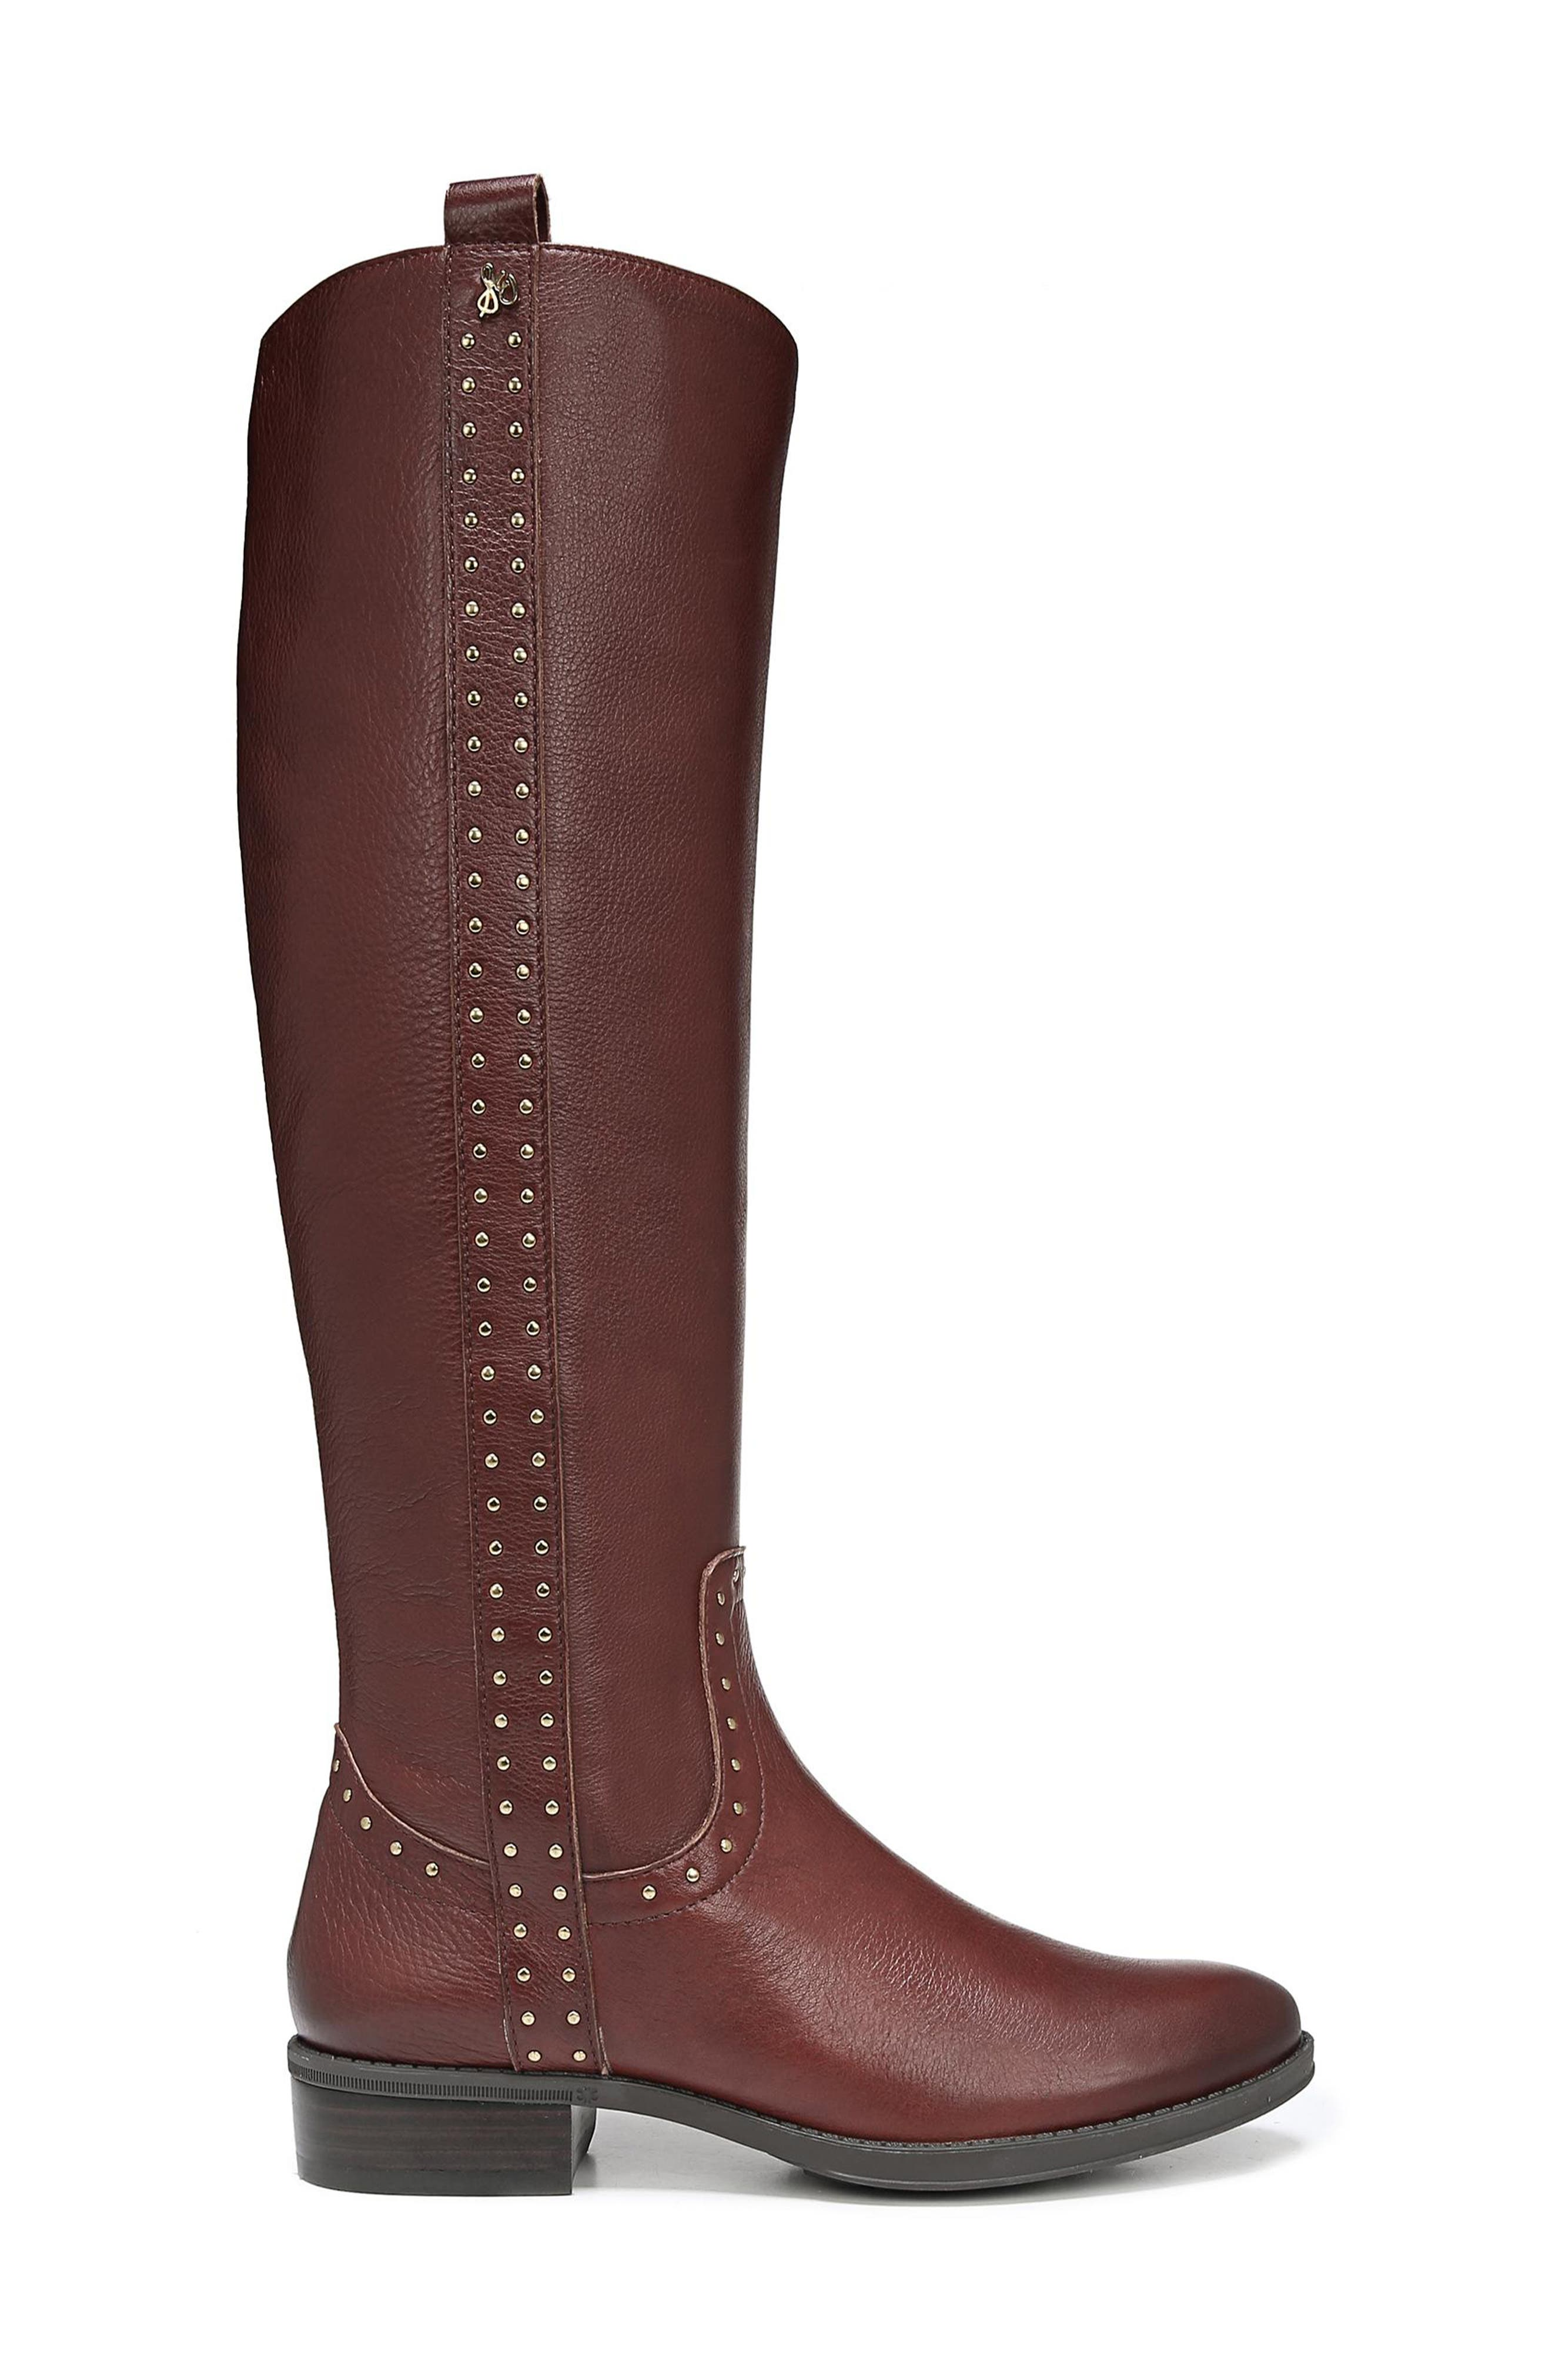 Prina Riding Boot,                             Alternate thumbnail 3, color,                             REDWOOD BROWN LEATHER